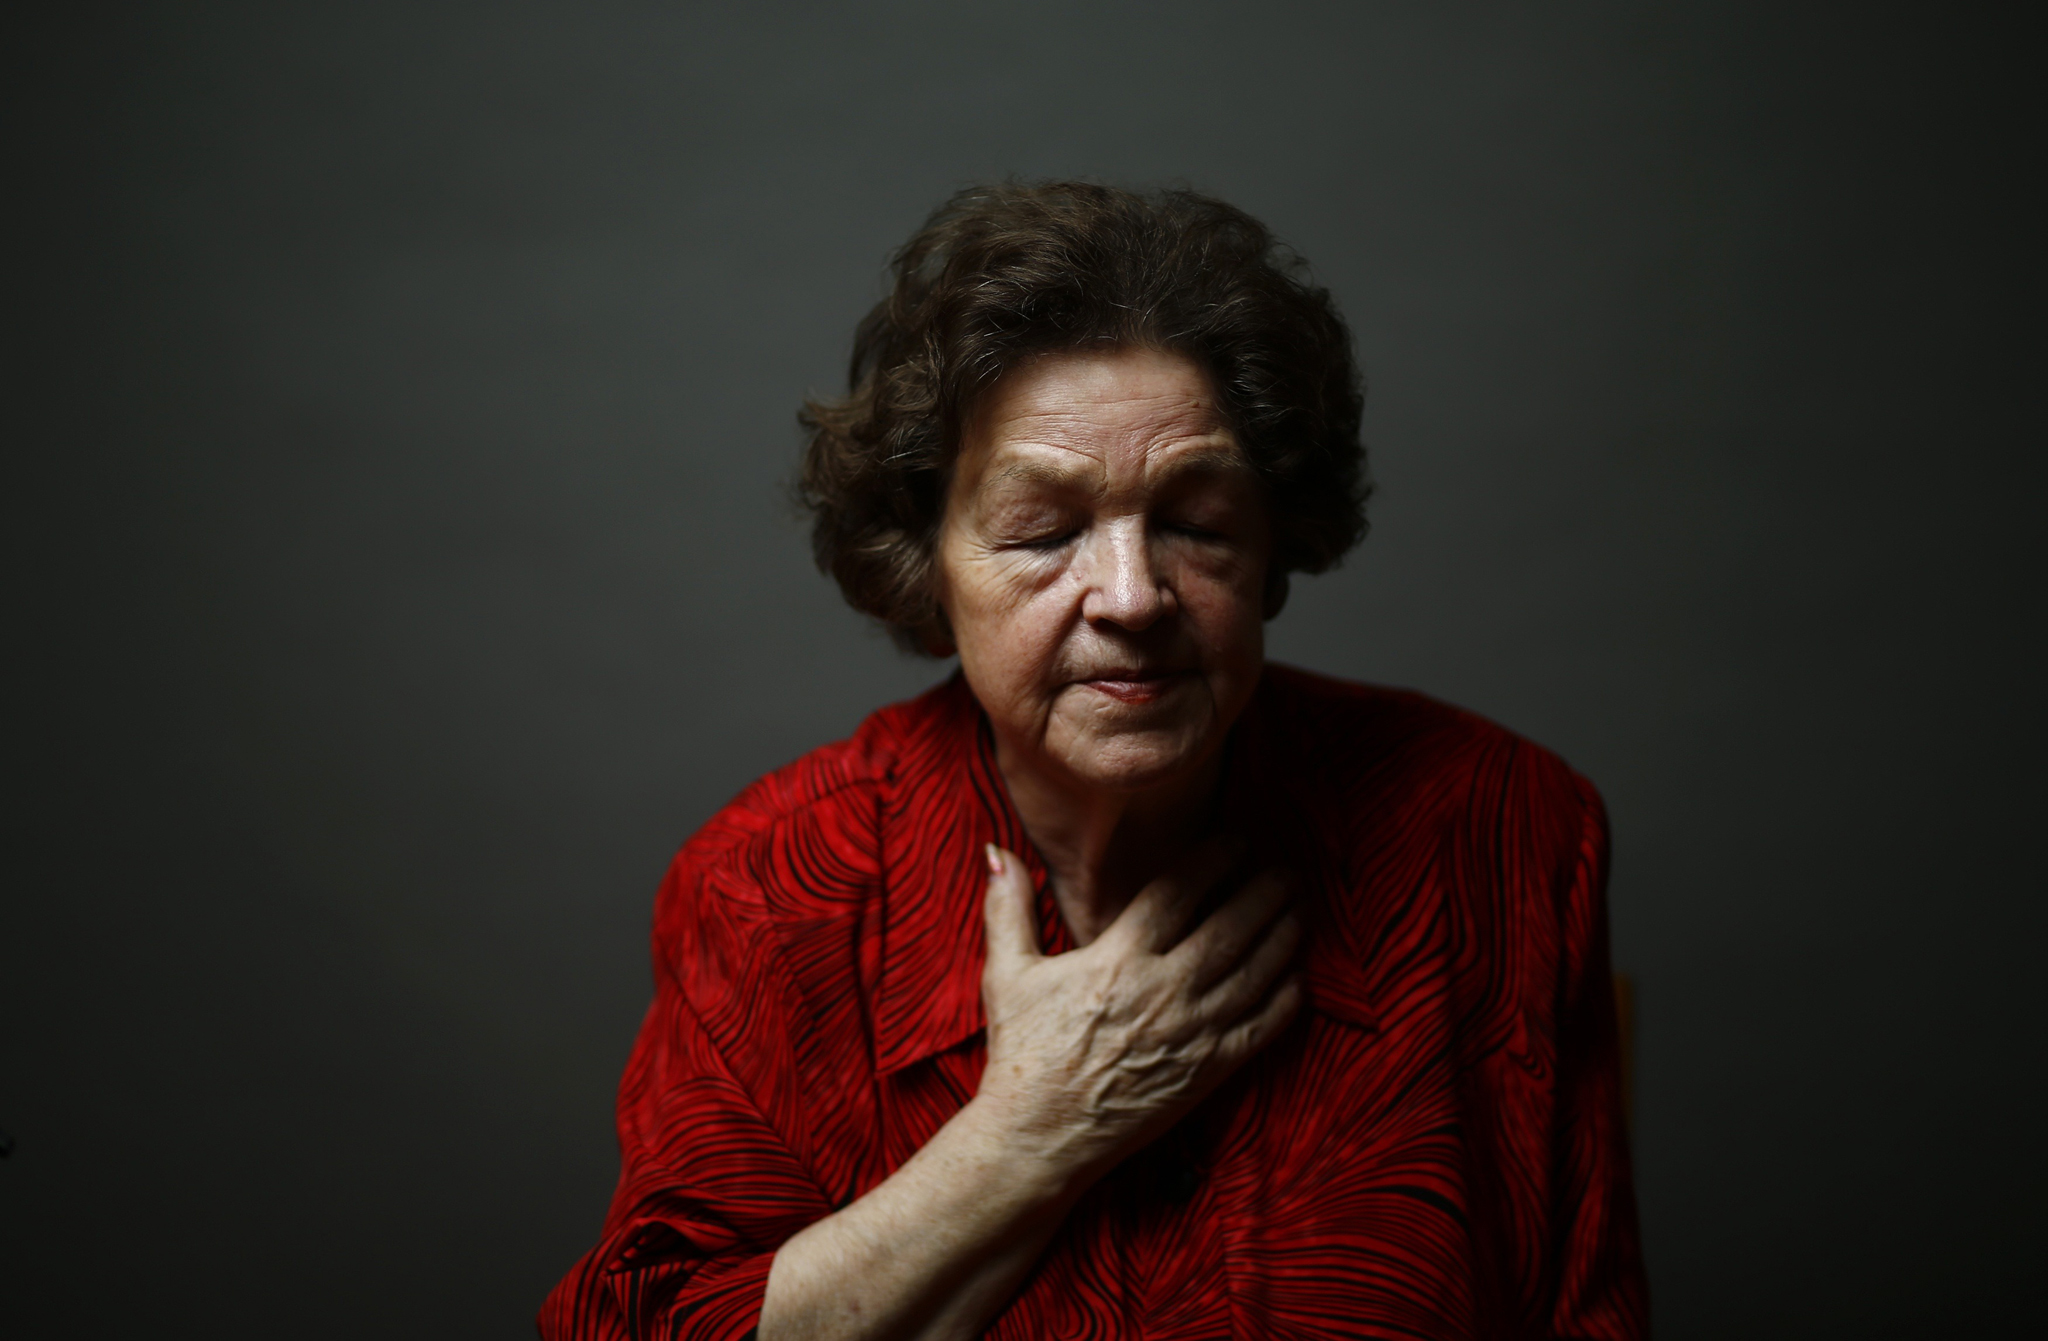 Auschwitz death camp survivor Danuta Bogdaniuk-Bogucka poses for a portrait in Warsaw...Auschwitz death camp survivor Danuta Bogdaniuk-Bogucka (maiden name Kaminska), 80, poses for a portrait in Warsaw January 5, 2015. Bogdaniuk-Bogucka was 10-years-old when she was sent to Auschwitz-Birkenau camp with her mother. Bogdaniuk-Bogucka was part of Josef Mengele's experiments when she was in Auschwitz. After the war she met her mother again and they discovered they had both been at Ravensbruck camp at the same time, but they had not realised this. As the liberation of Auschwitz approaches its 70th anniversary this month, Reuters photographers took portraits of now elderly survivors. About 1.5 million people, most of them Jews, were killed at the Nazi camp which has became a symbol of the horrors of the Holocaust and World War Two, which ravaged Europe. The camp was liberated by Soviet Red Army troops on January 27, 1945 and about 200,000 camp inmates survived. REUTERS/Kacper Pempel (POLAND - Tags: ANNIVERSARY SOCIETY PORTRAIT CONFLICT)    ATTENTION EDITORS: PICTURE 18 OF 30 FOR WIDER IMAGE PACKAGE 'AUSCHWITZ SURVIVORS, 70 YEARS ON'    TO FIND ALL IMAGES SEARCH 'WWII SURVIVORS REUTERS'